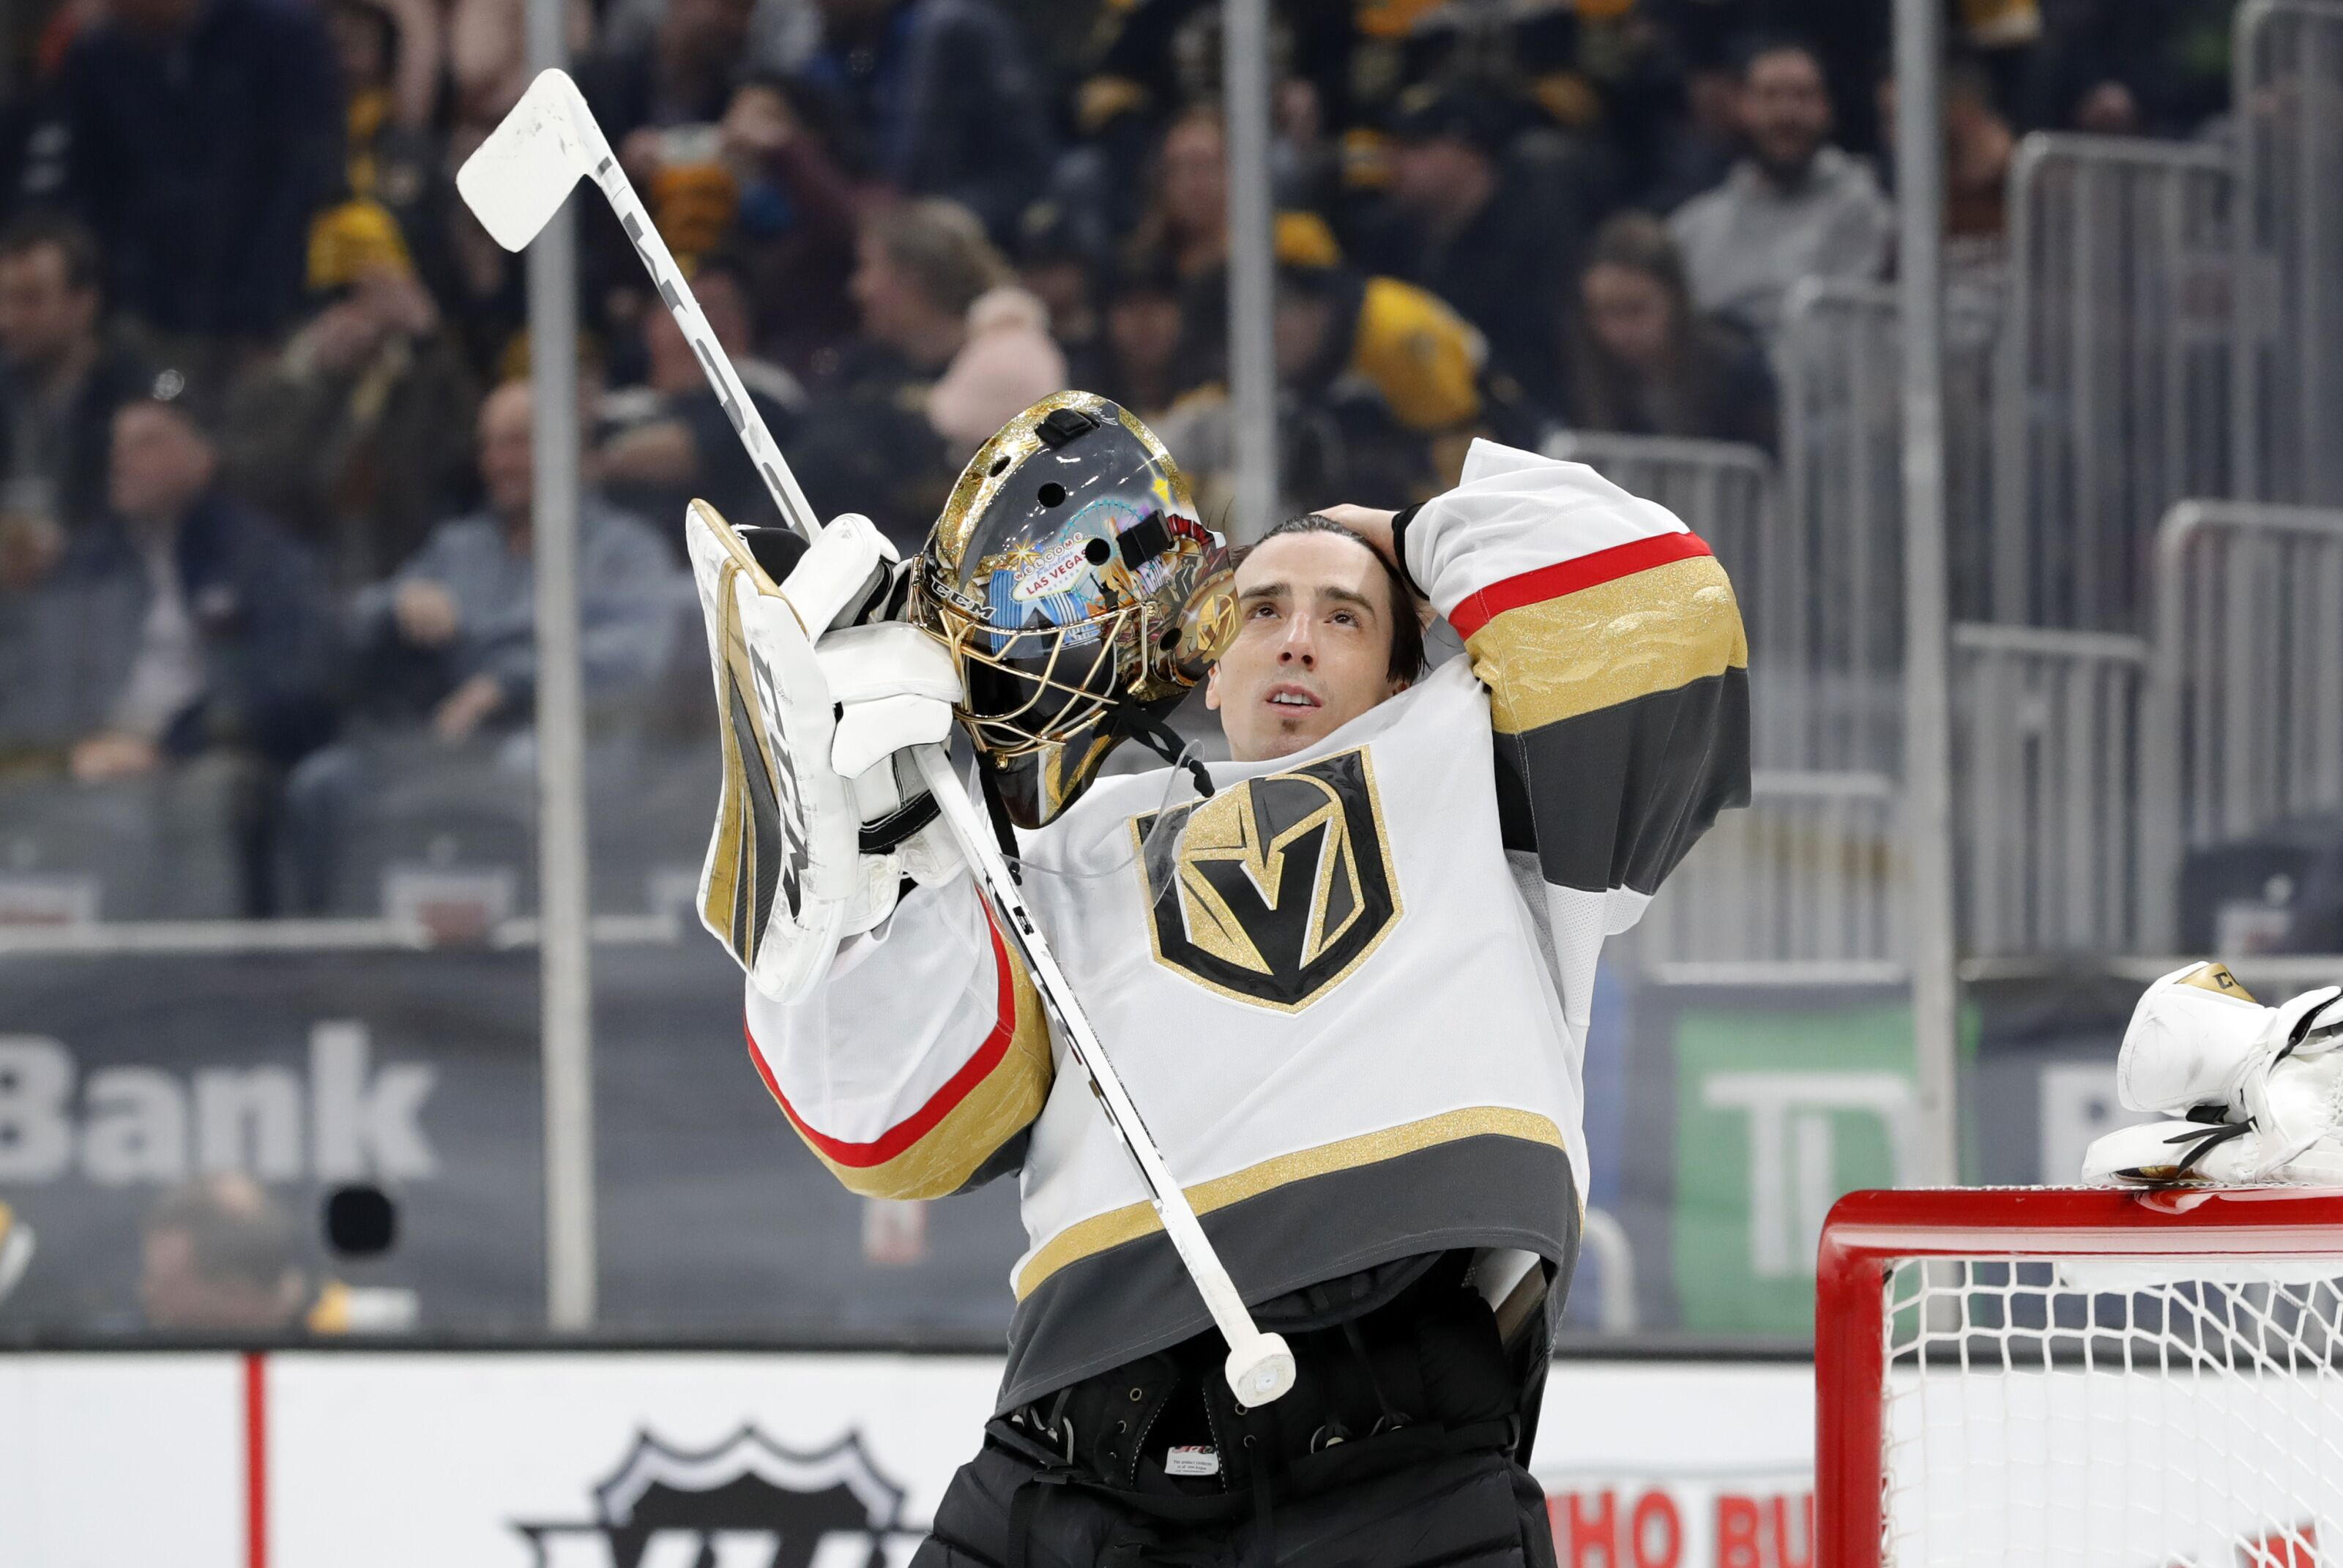 Vegas Golden Knights: Fleury dethrones The King as goalie of the decade